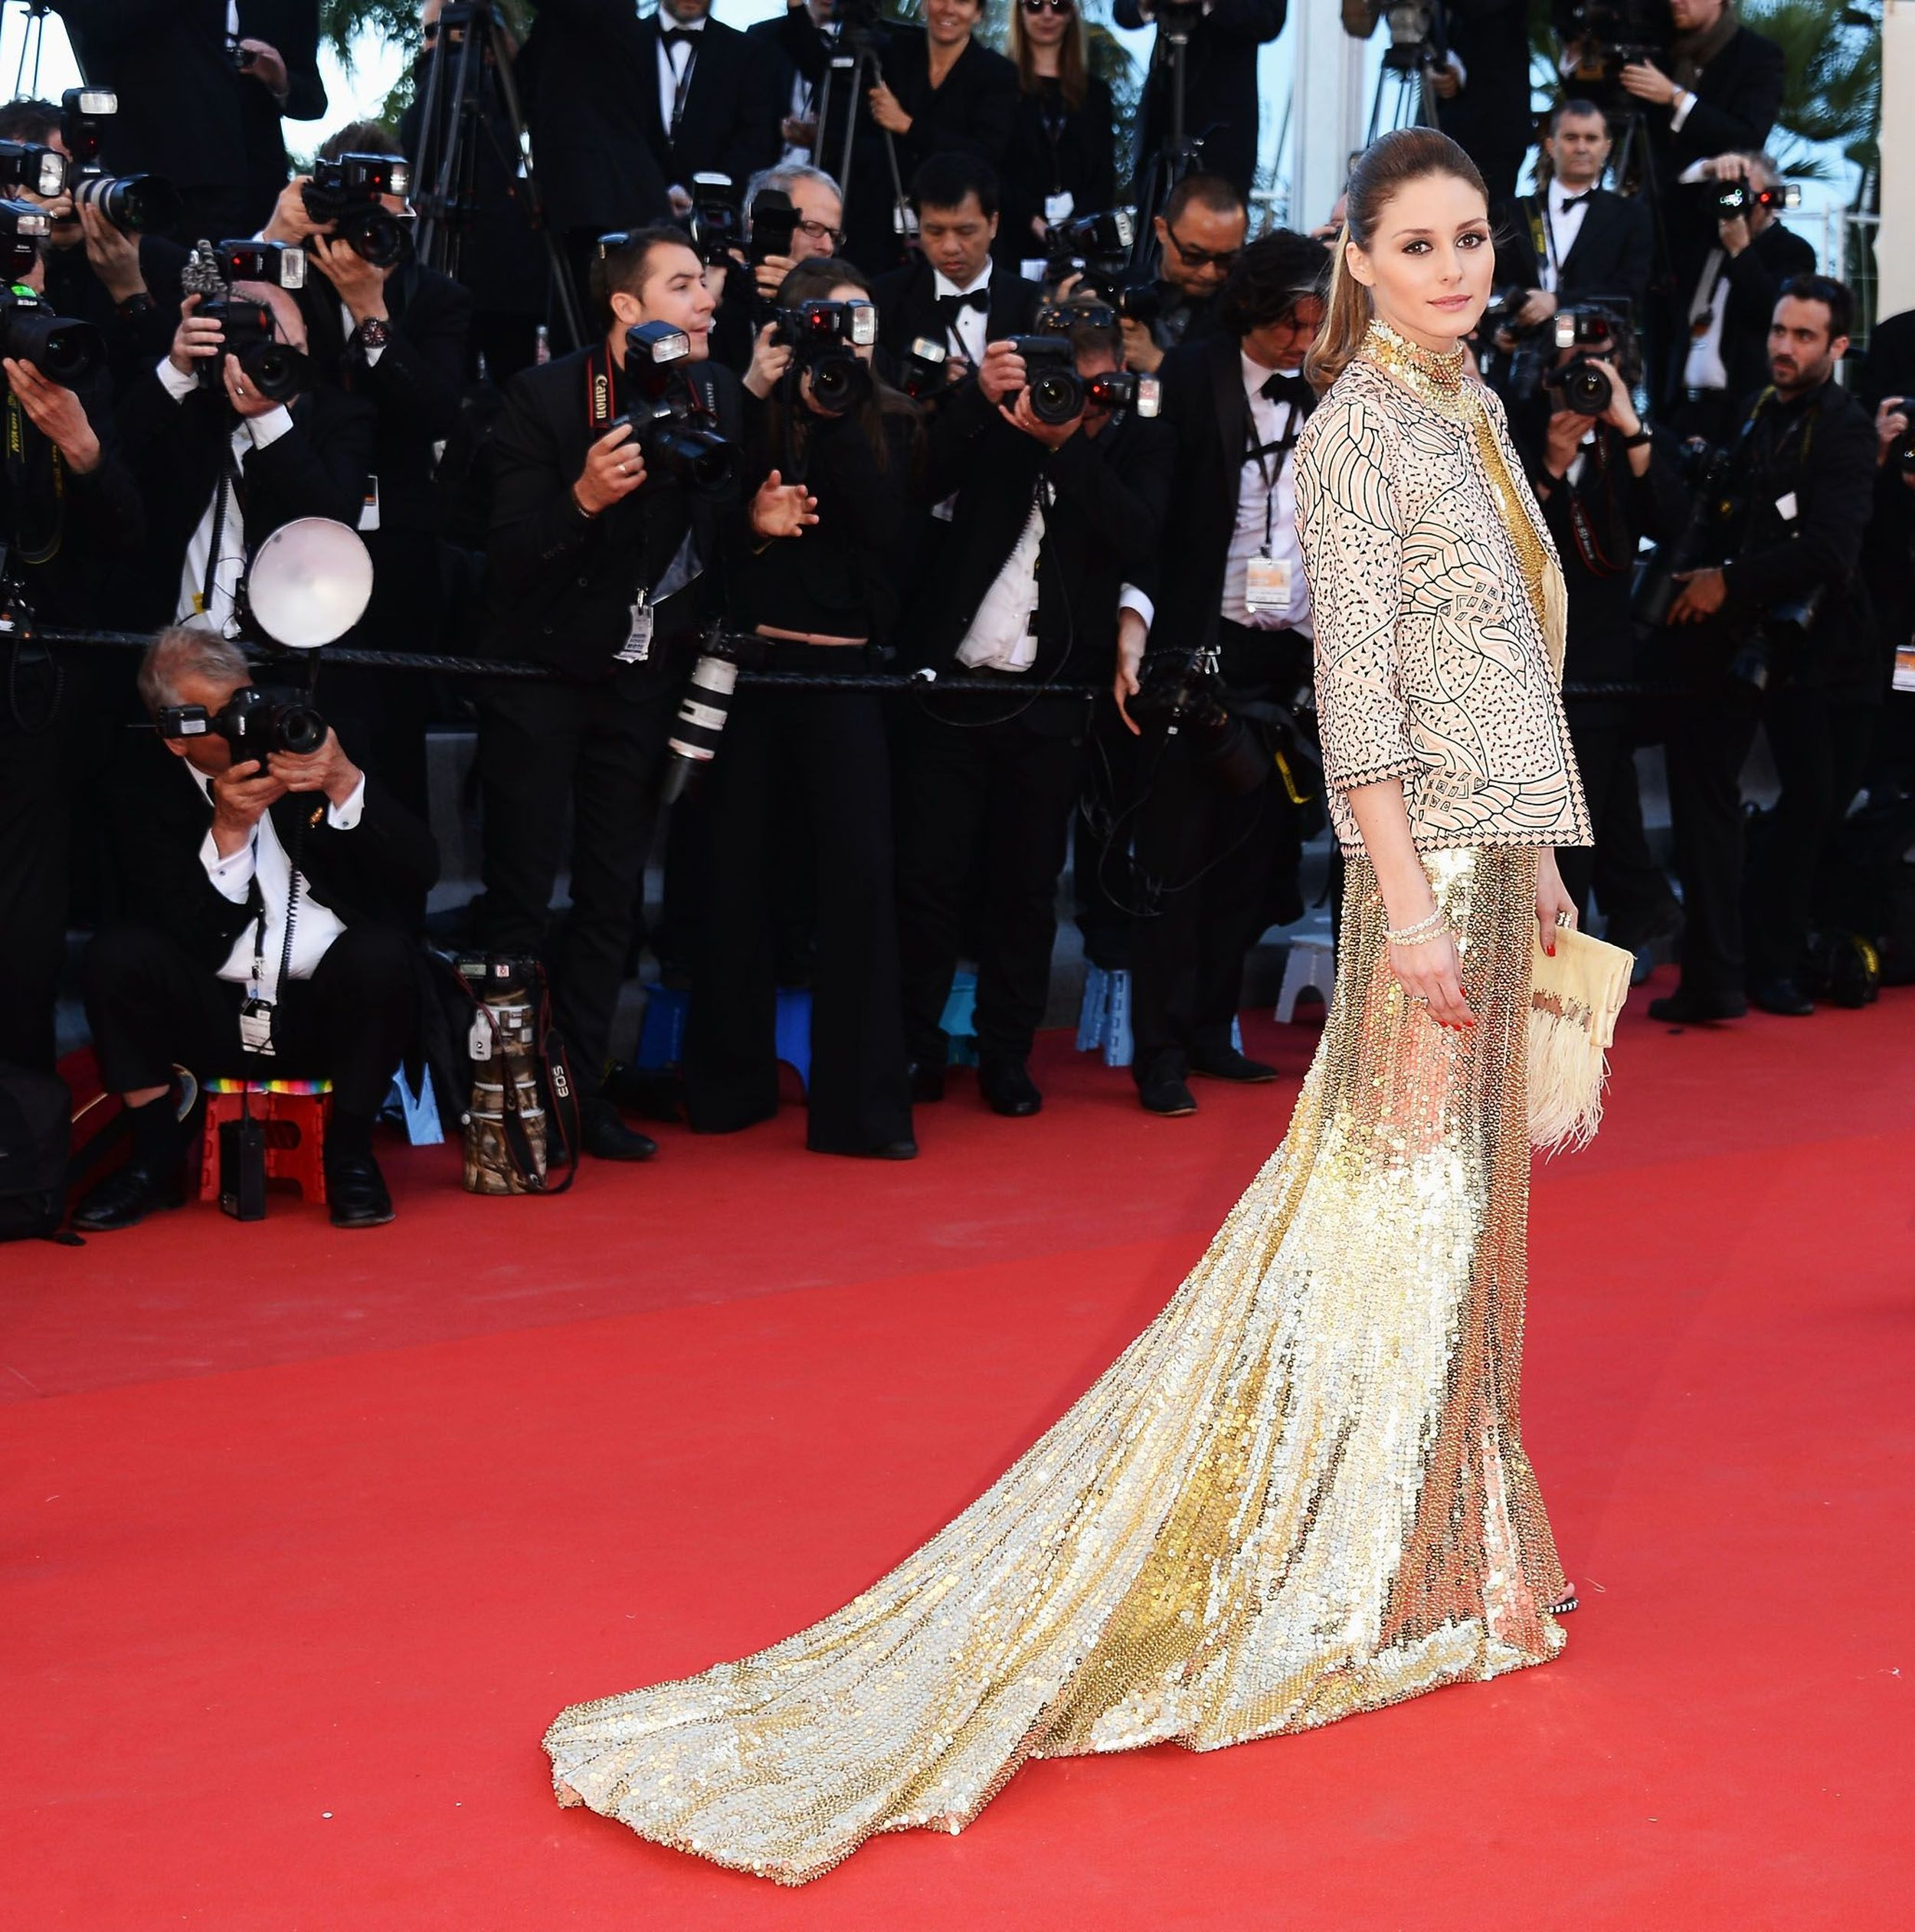 Olivia Palermo was a golden beauty in her #RobertoCavalli gown at 'The Immigrant' premiere tonight in Cannes! #CavalliatCannes